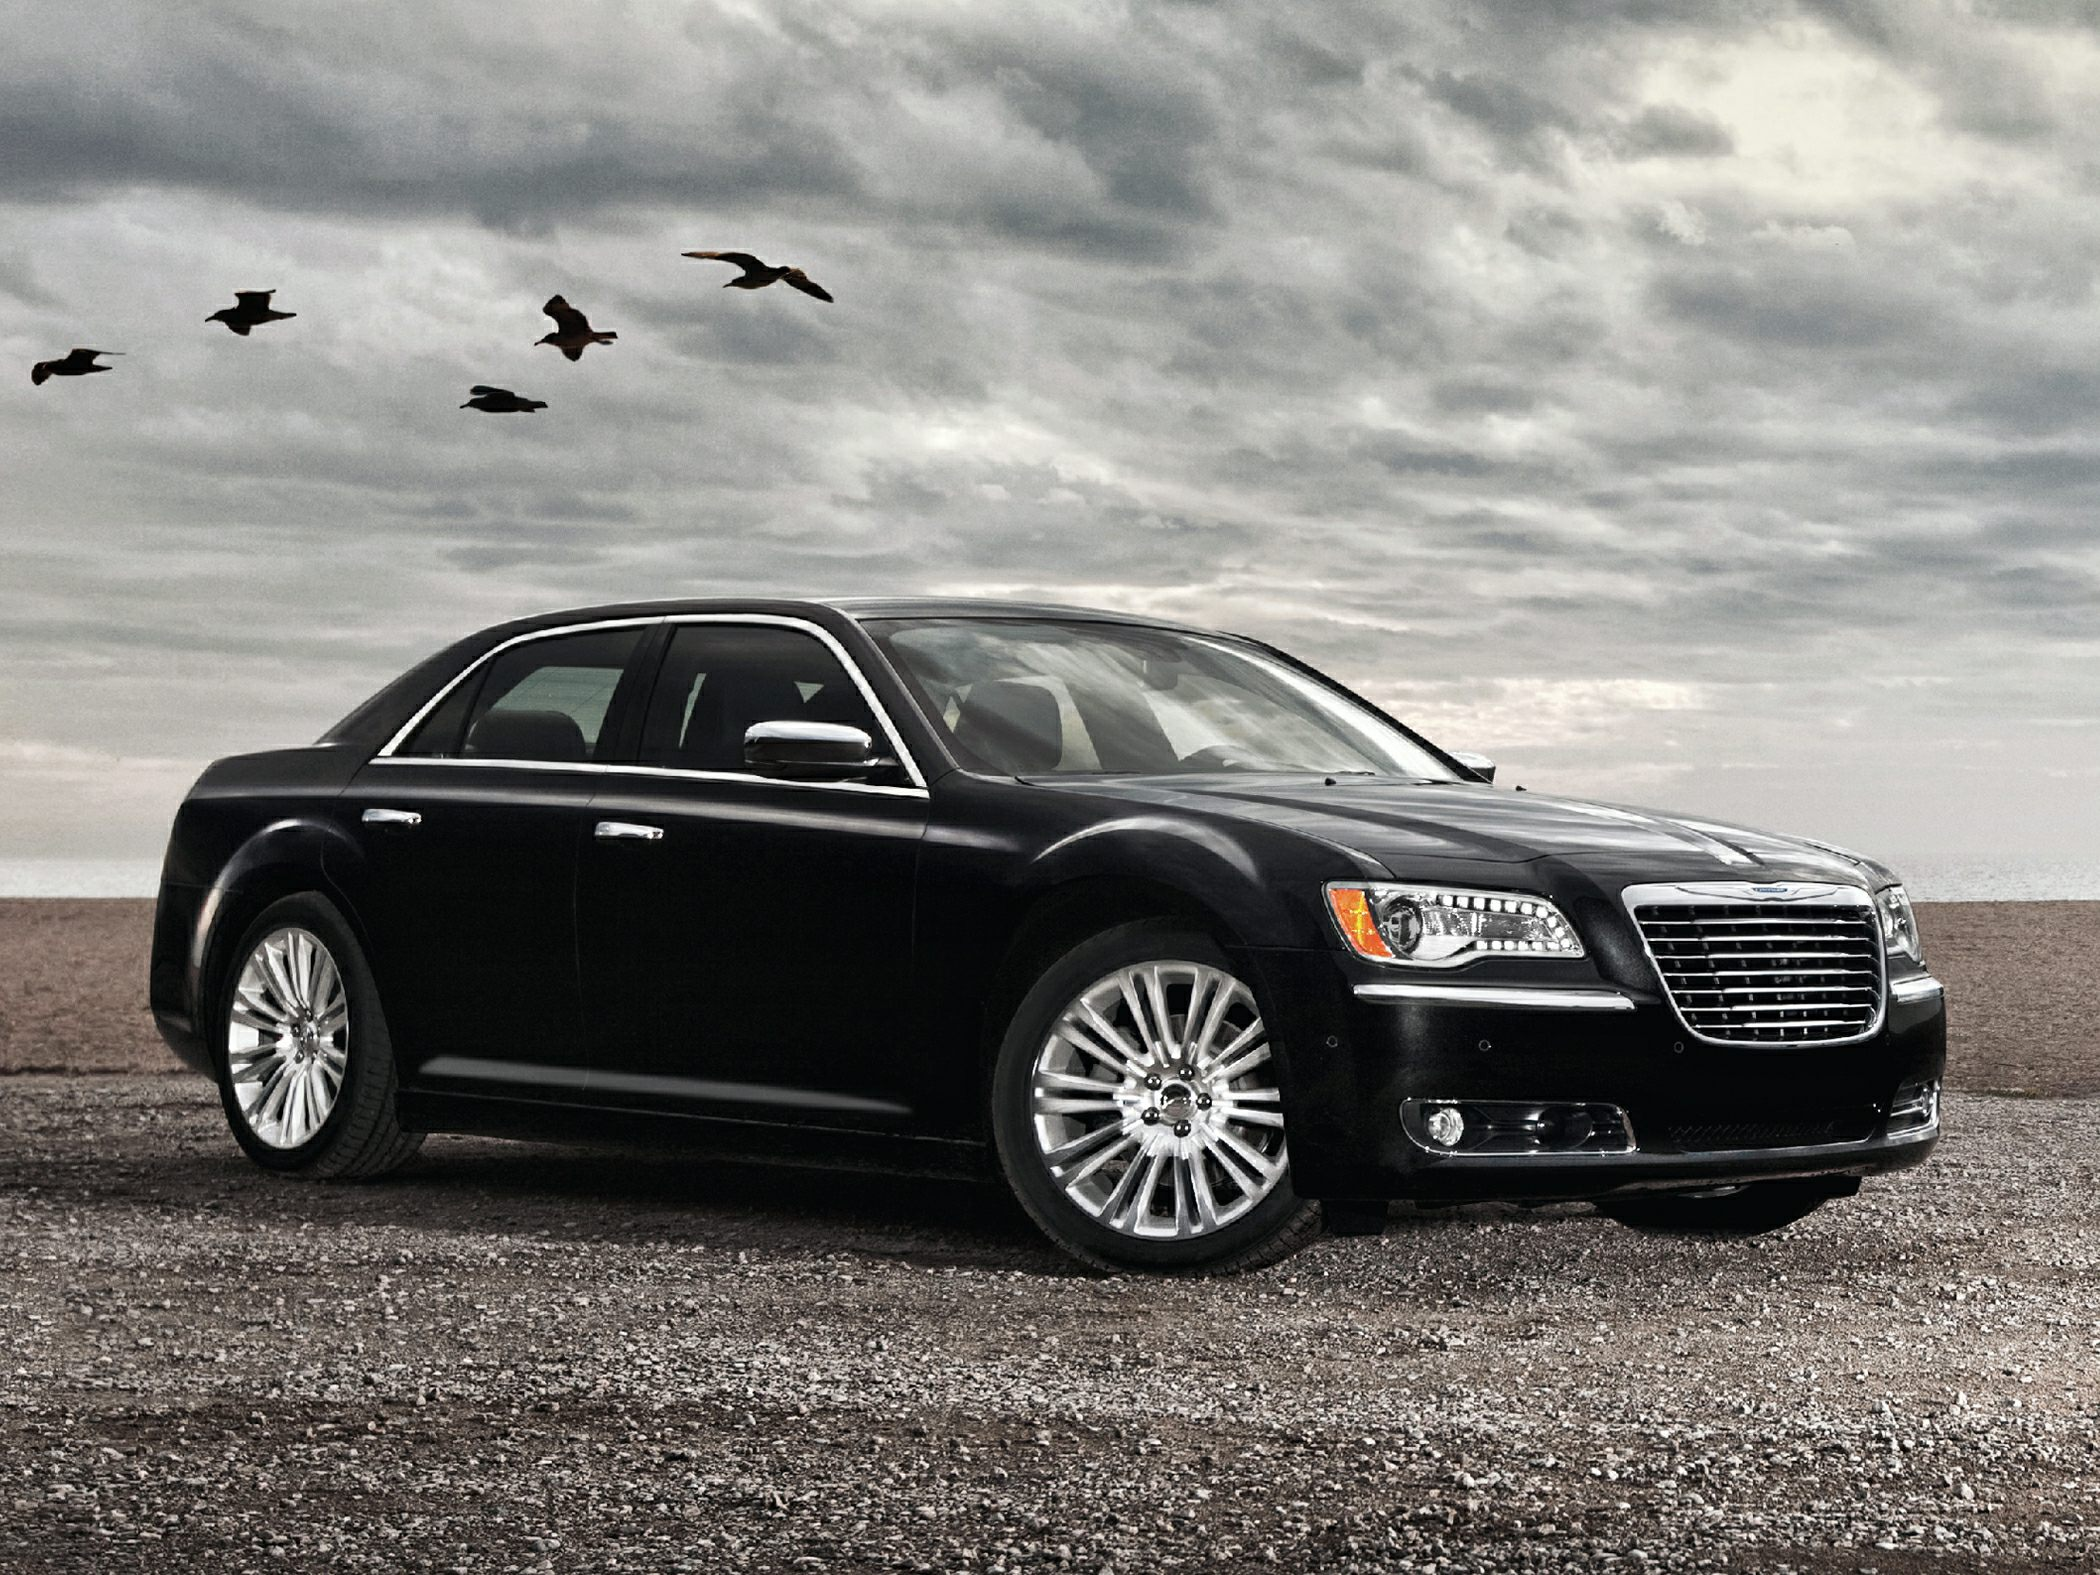 Chrysler 300 2014 #1